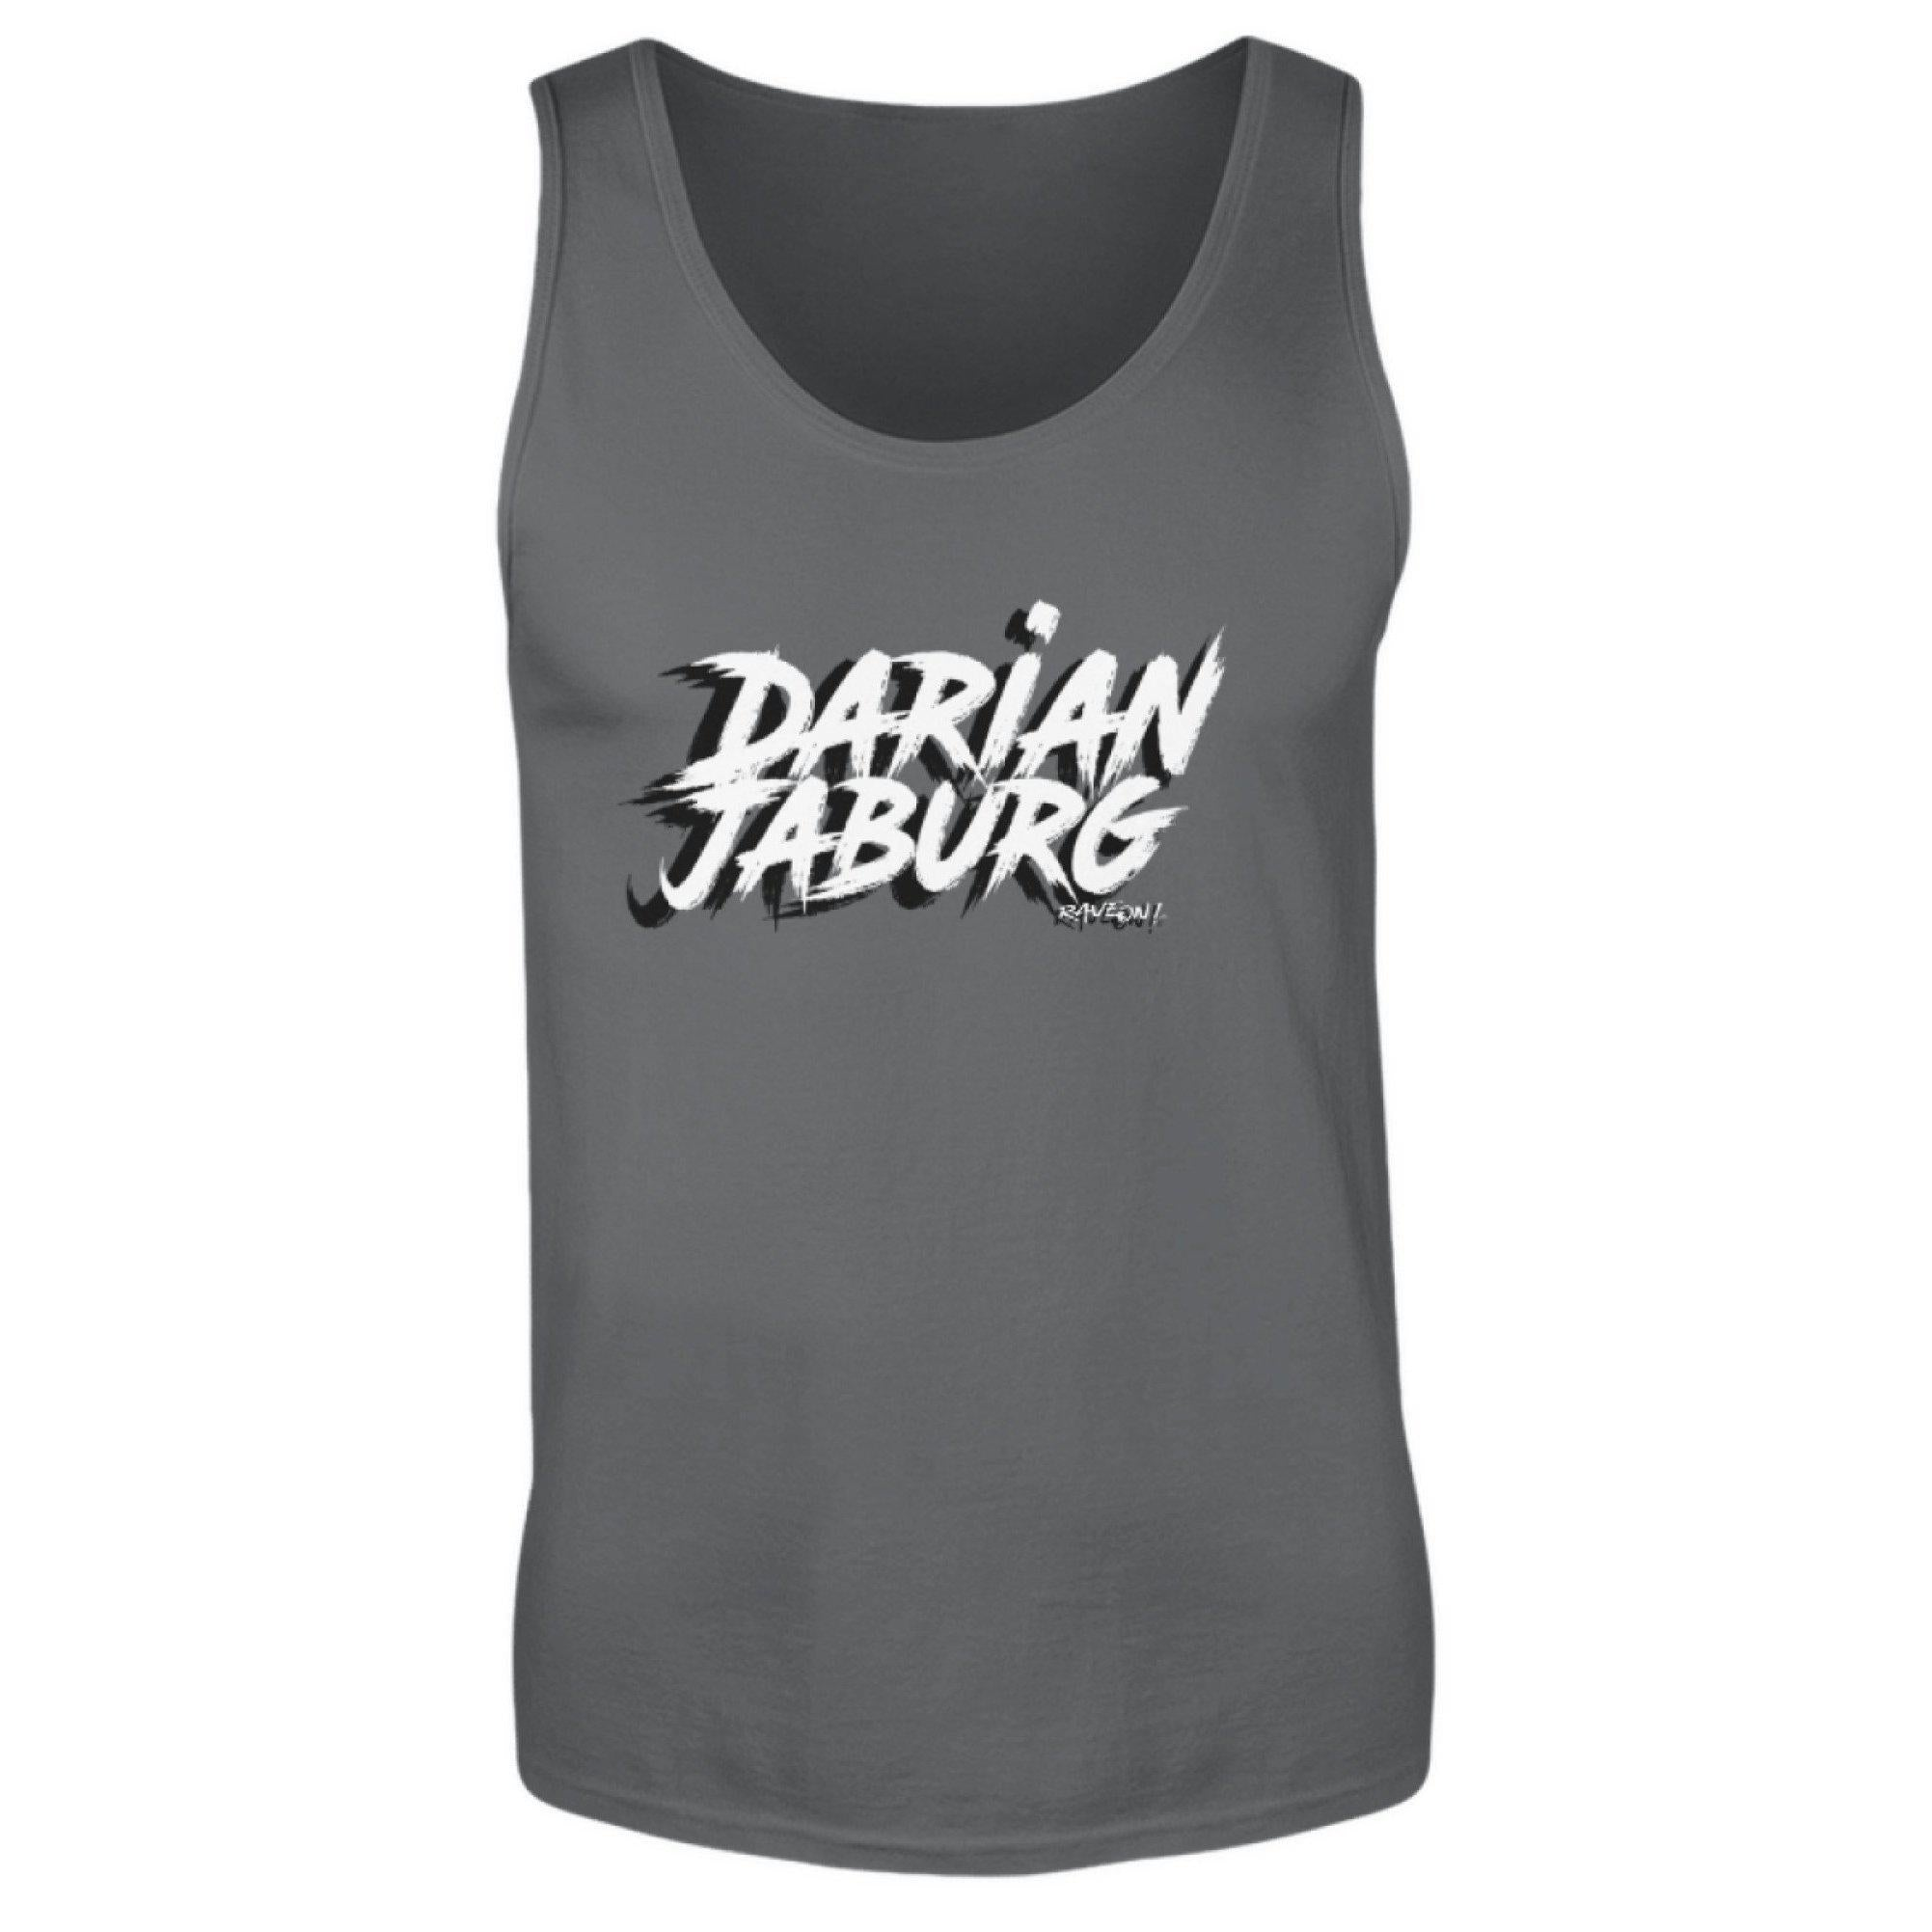 Darian Jaburg - BS Rec.Black - Rave On!® - Herren Tanktop Herren Tank-Top Charcoal (Solid) / S - Rave On!® der Club & Techno Szene Shop für Coole Junge Mode Streetwear Style & Fashion Outfits + Sexy Festival 420 Stuff